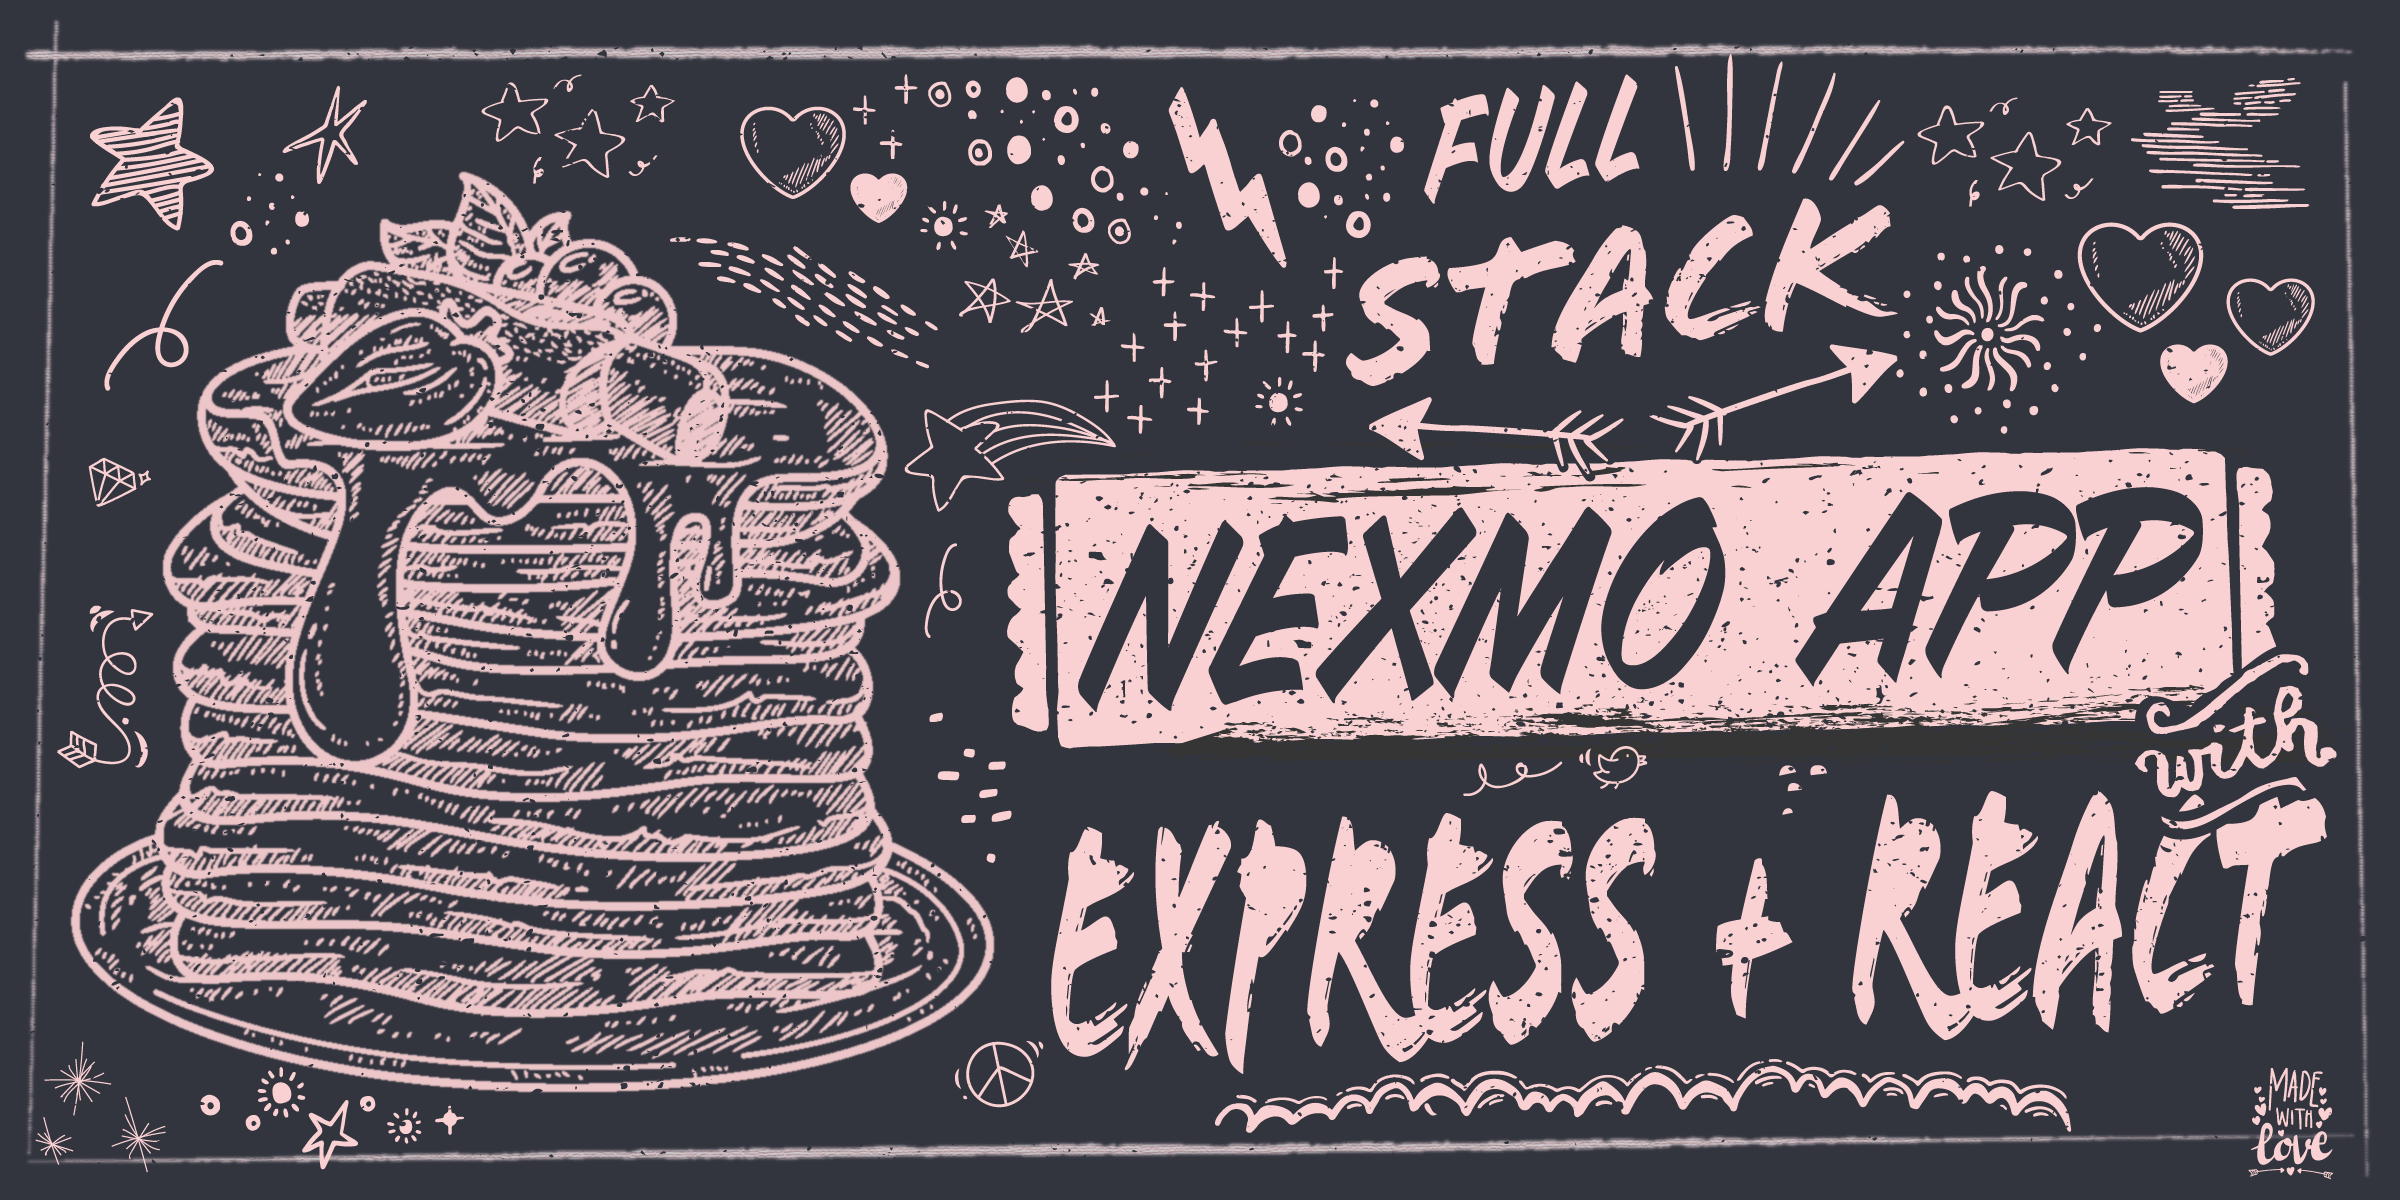 Build a Full Stack Nexmo App with Express and React